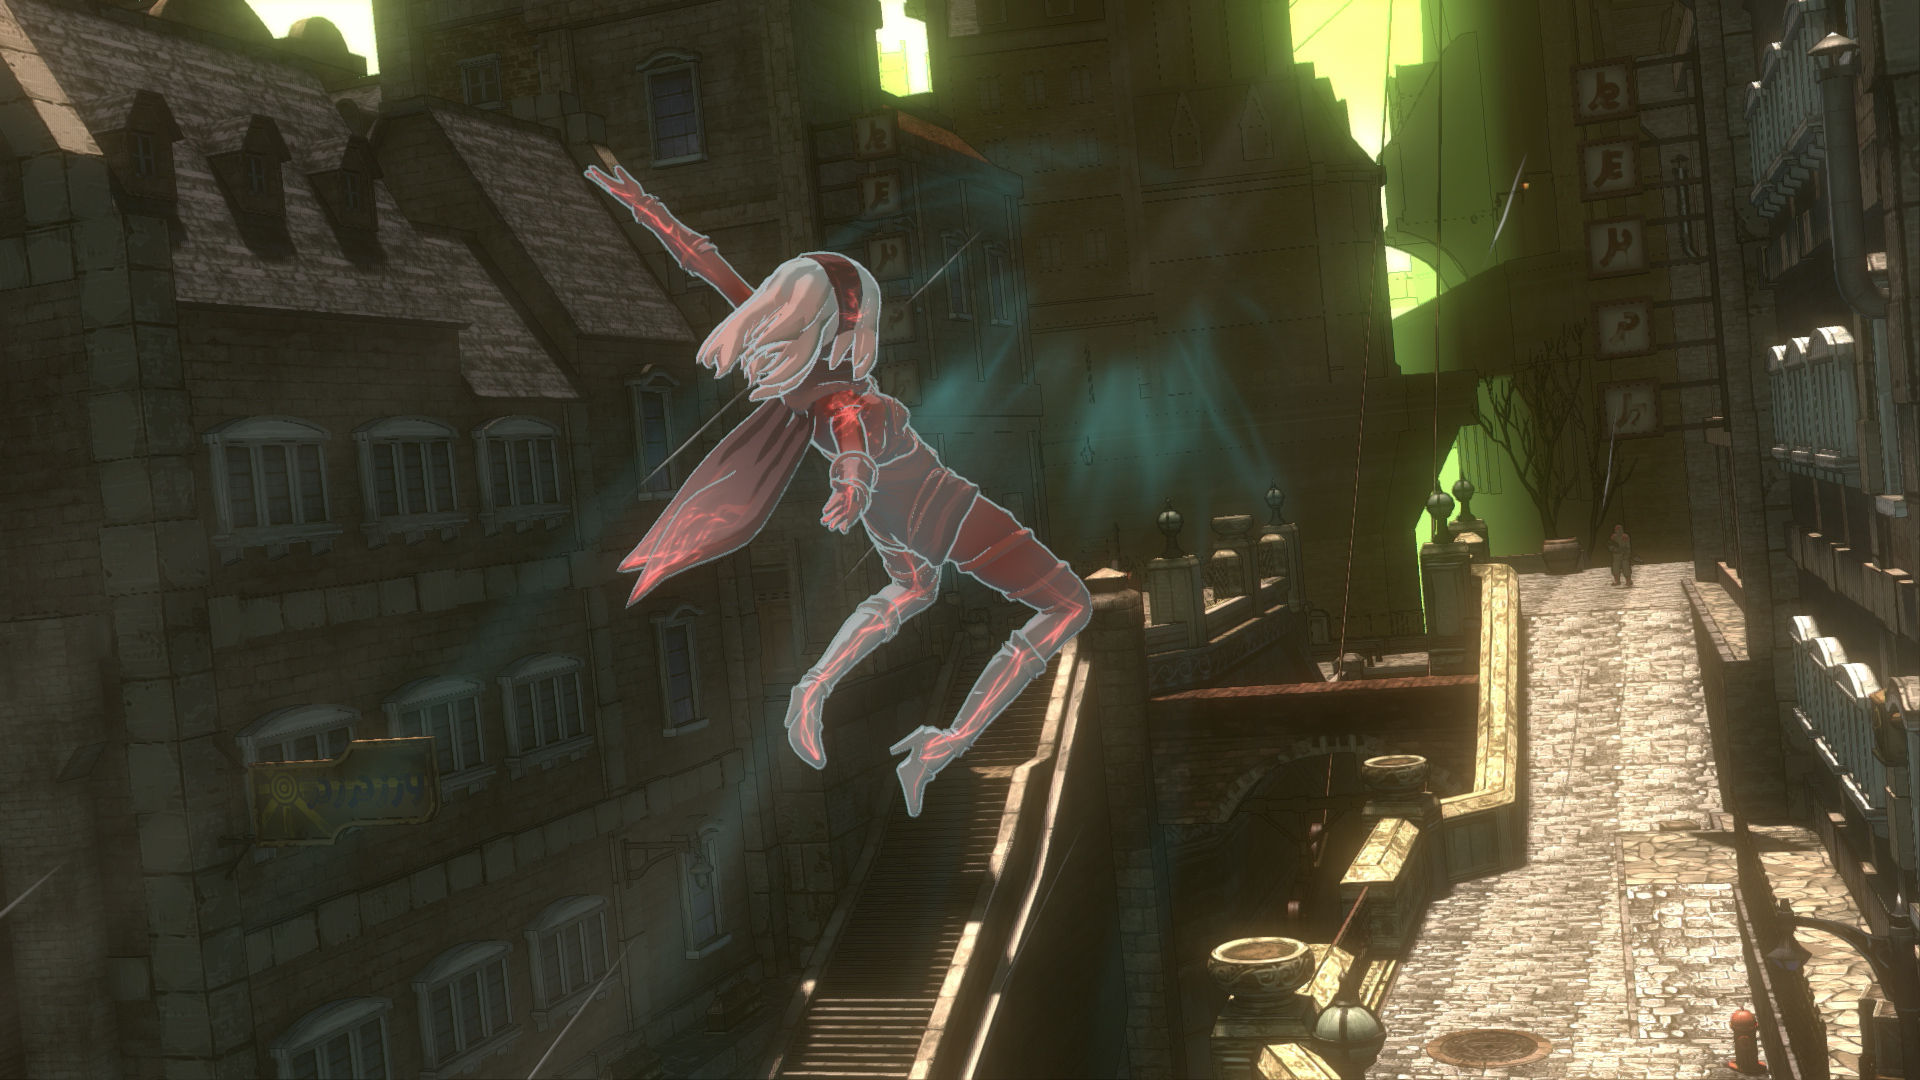 Скриншот *Gravity Rush Remastered [PS4 Exclusive] 5.05 / 6.72 / 7.02 [EUR] (2014) [Русский] (v1.00)*